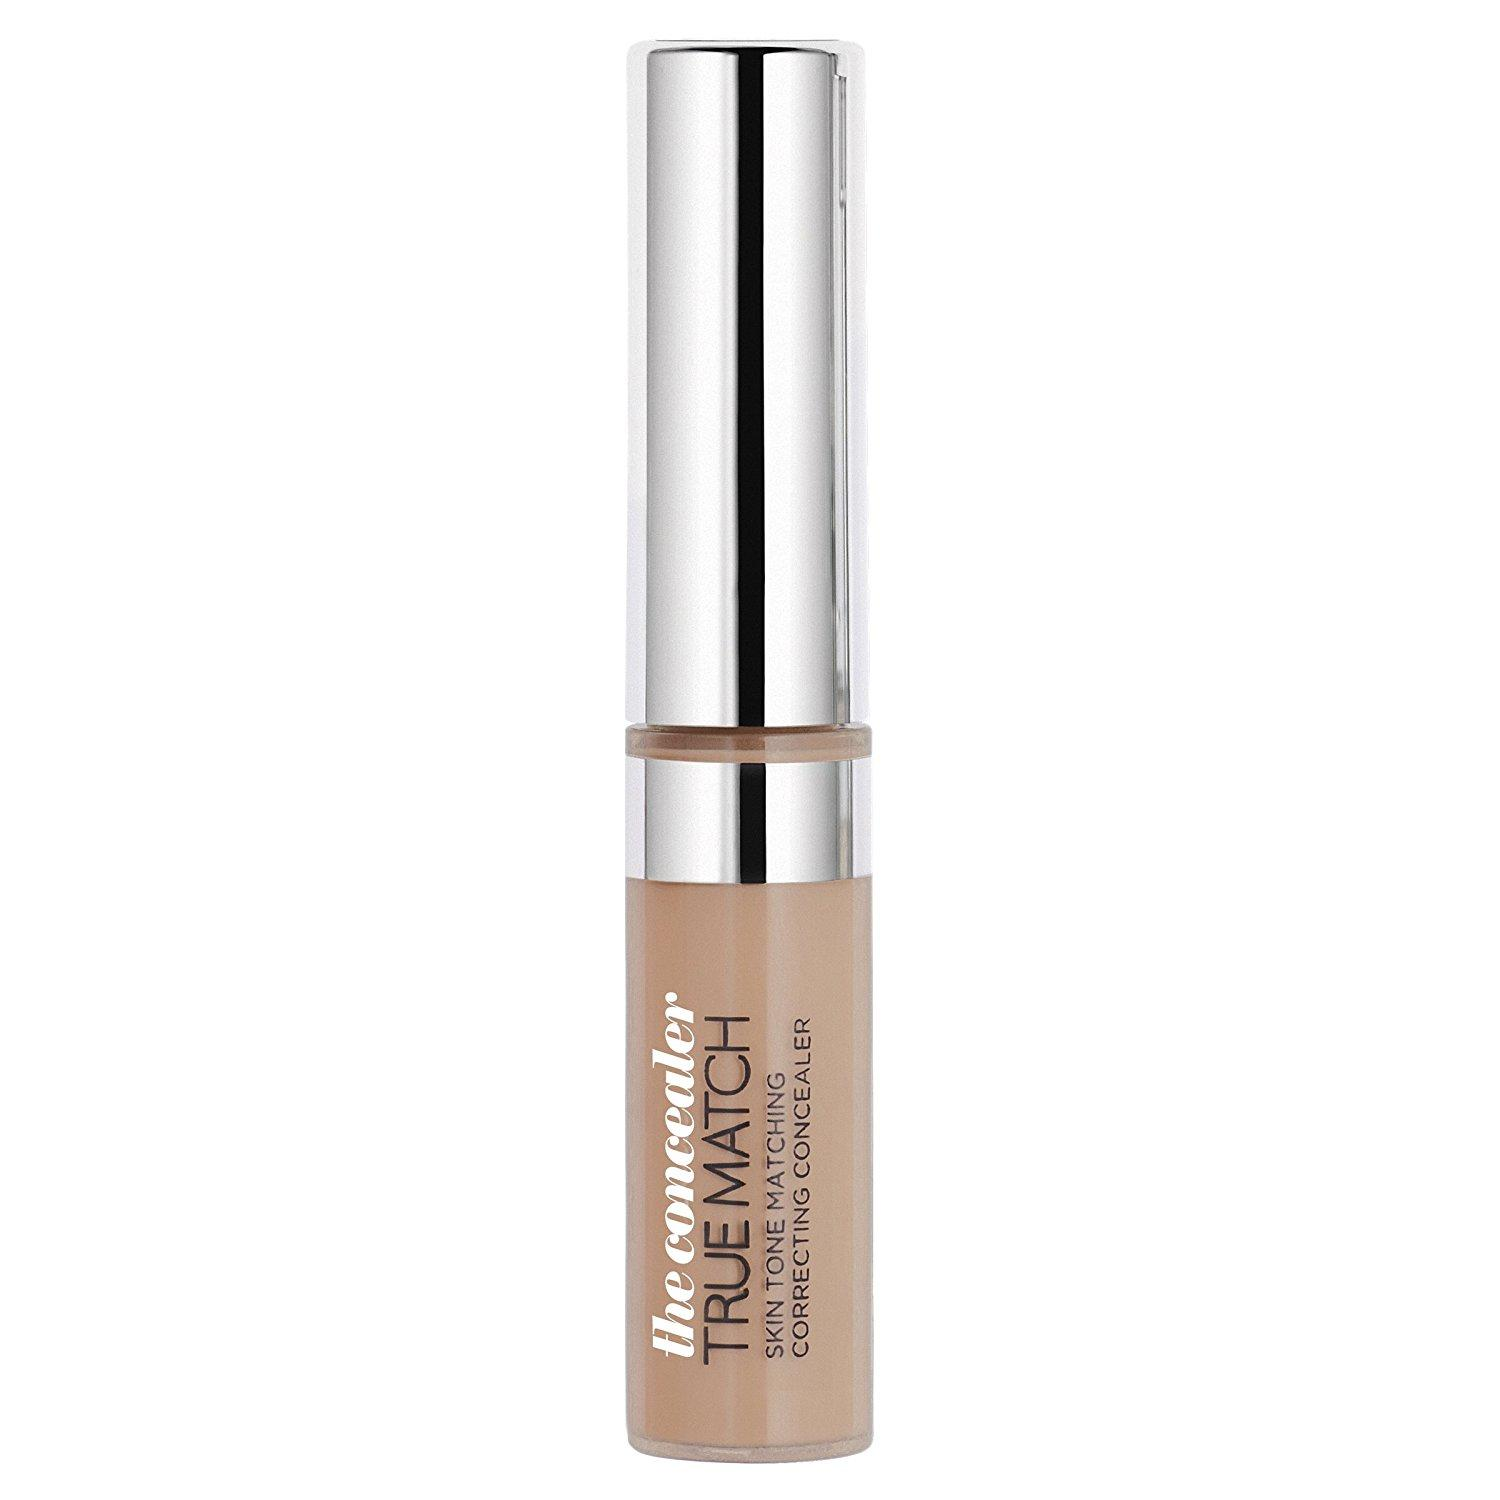 L'Oreal Paris True Match Concealer - 5 Sand